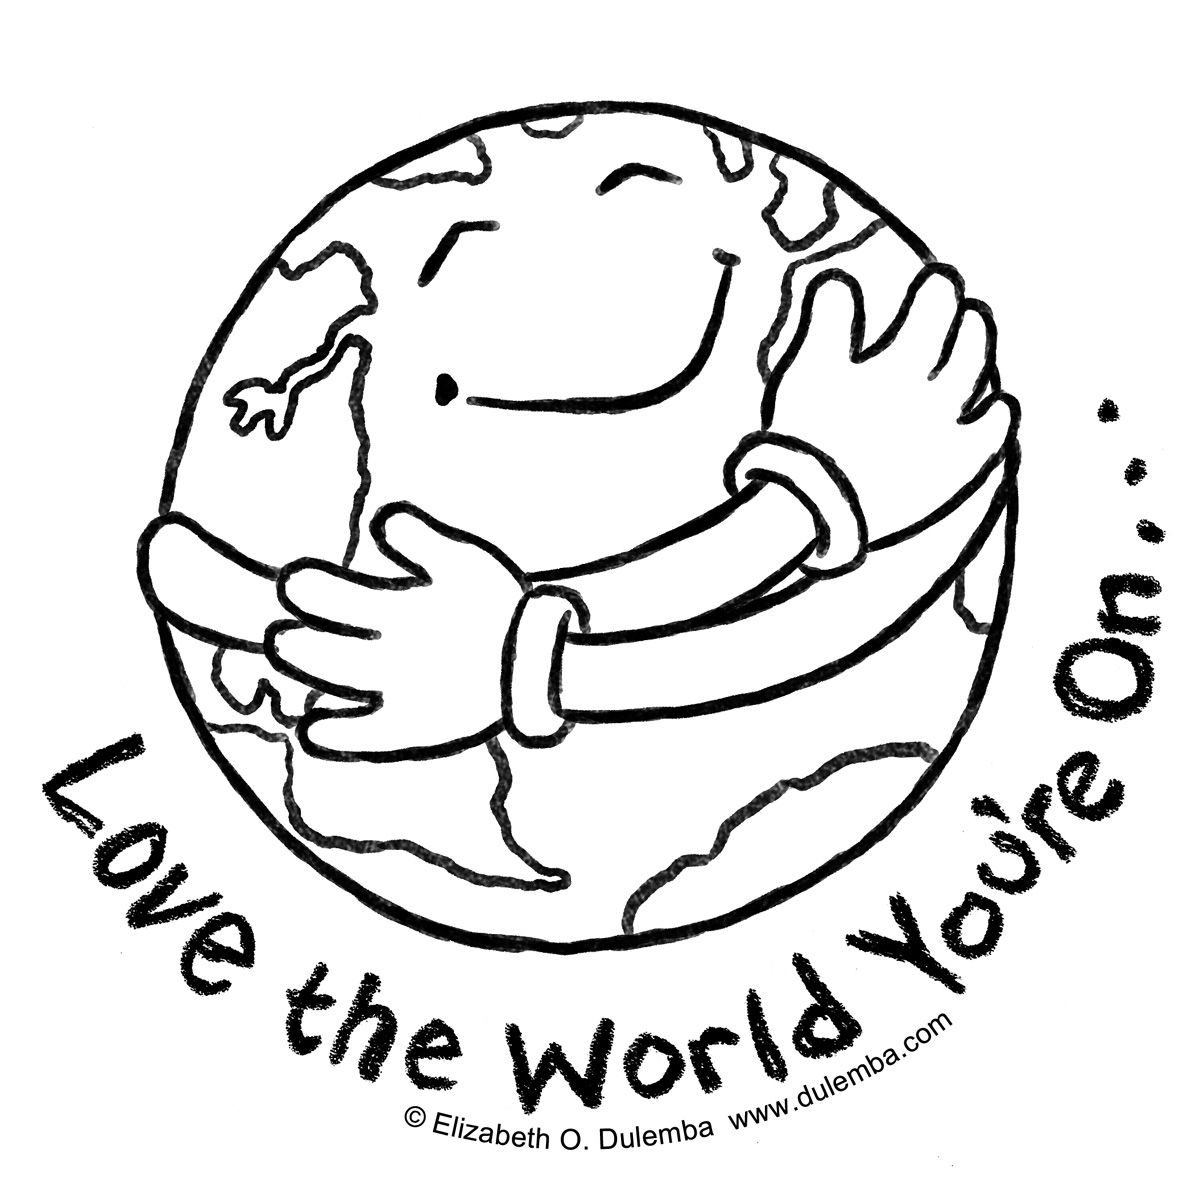 Earth Day Coloring Pages - Information World Earth Day Coloring Pages